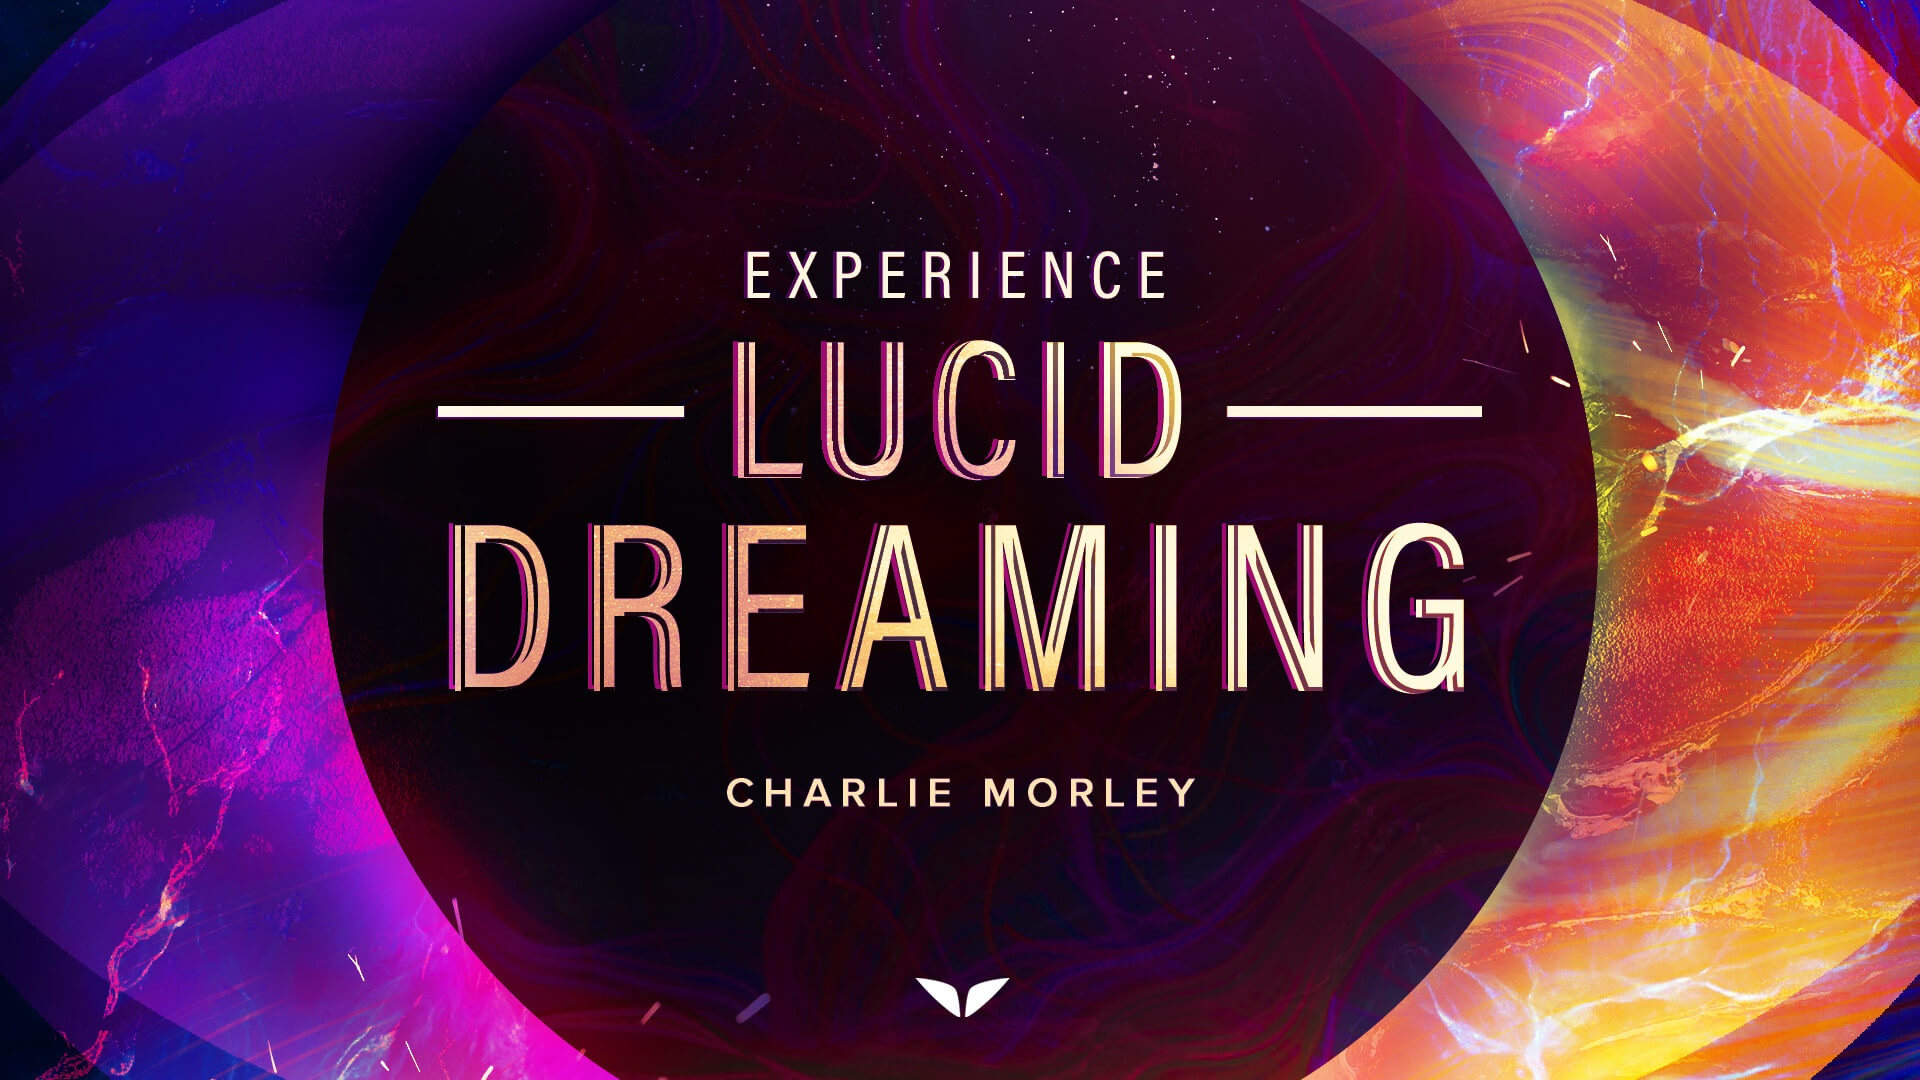 Experience Lucid Dreaming